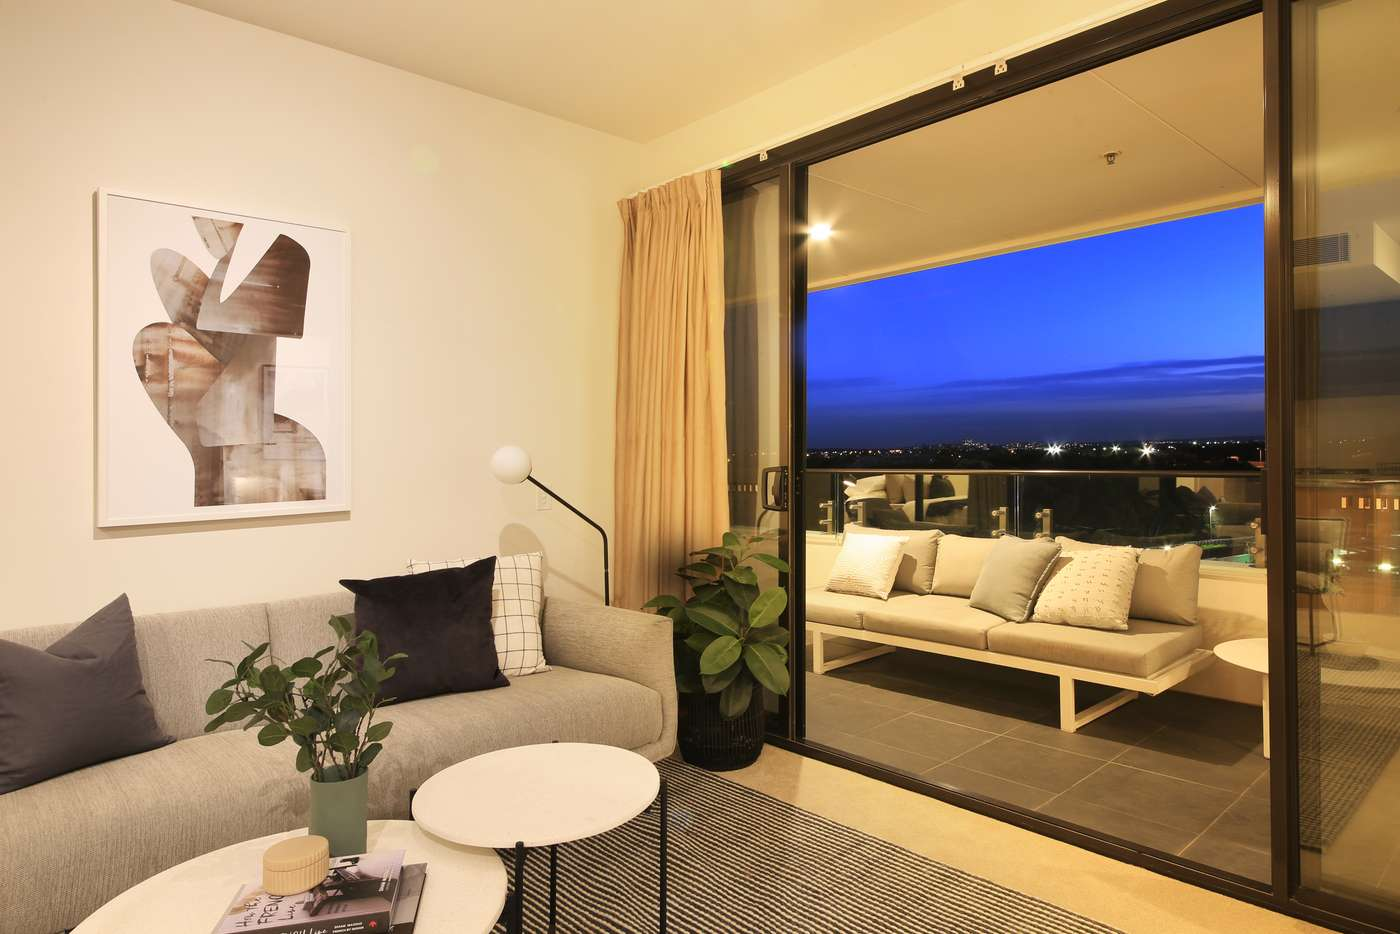 Main view of Homely apartment listing, 708/26 Levey Street, Wolli Creek NSW 2205